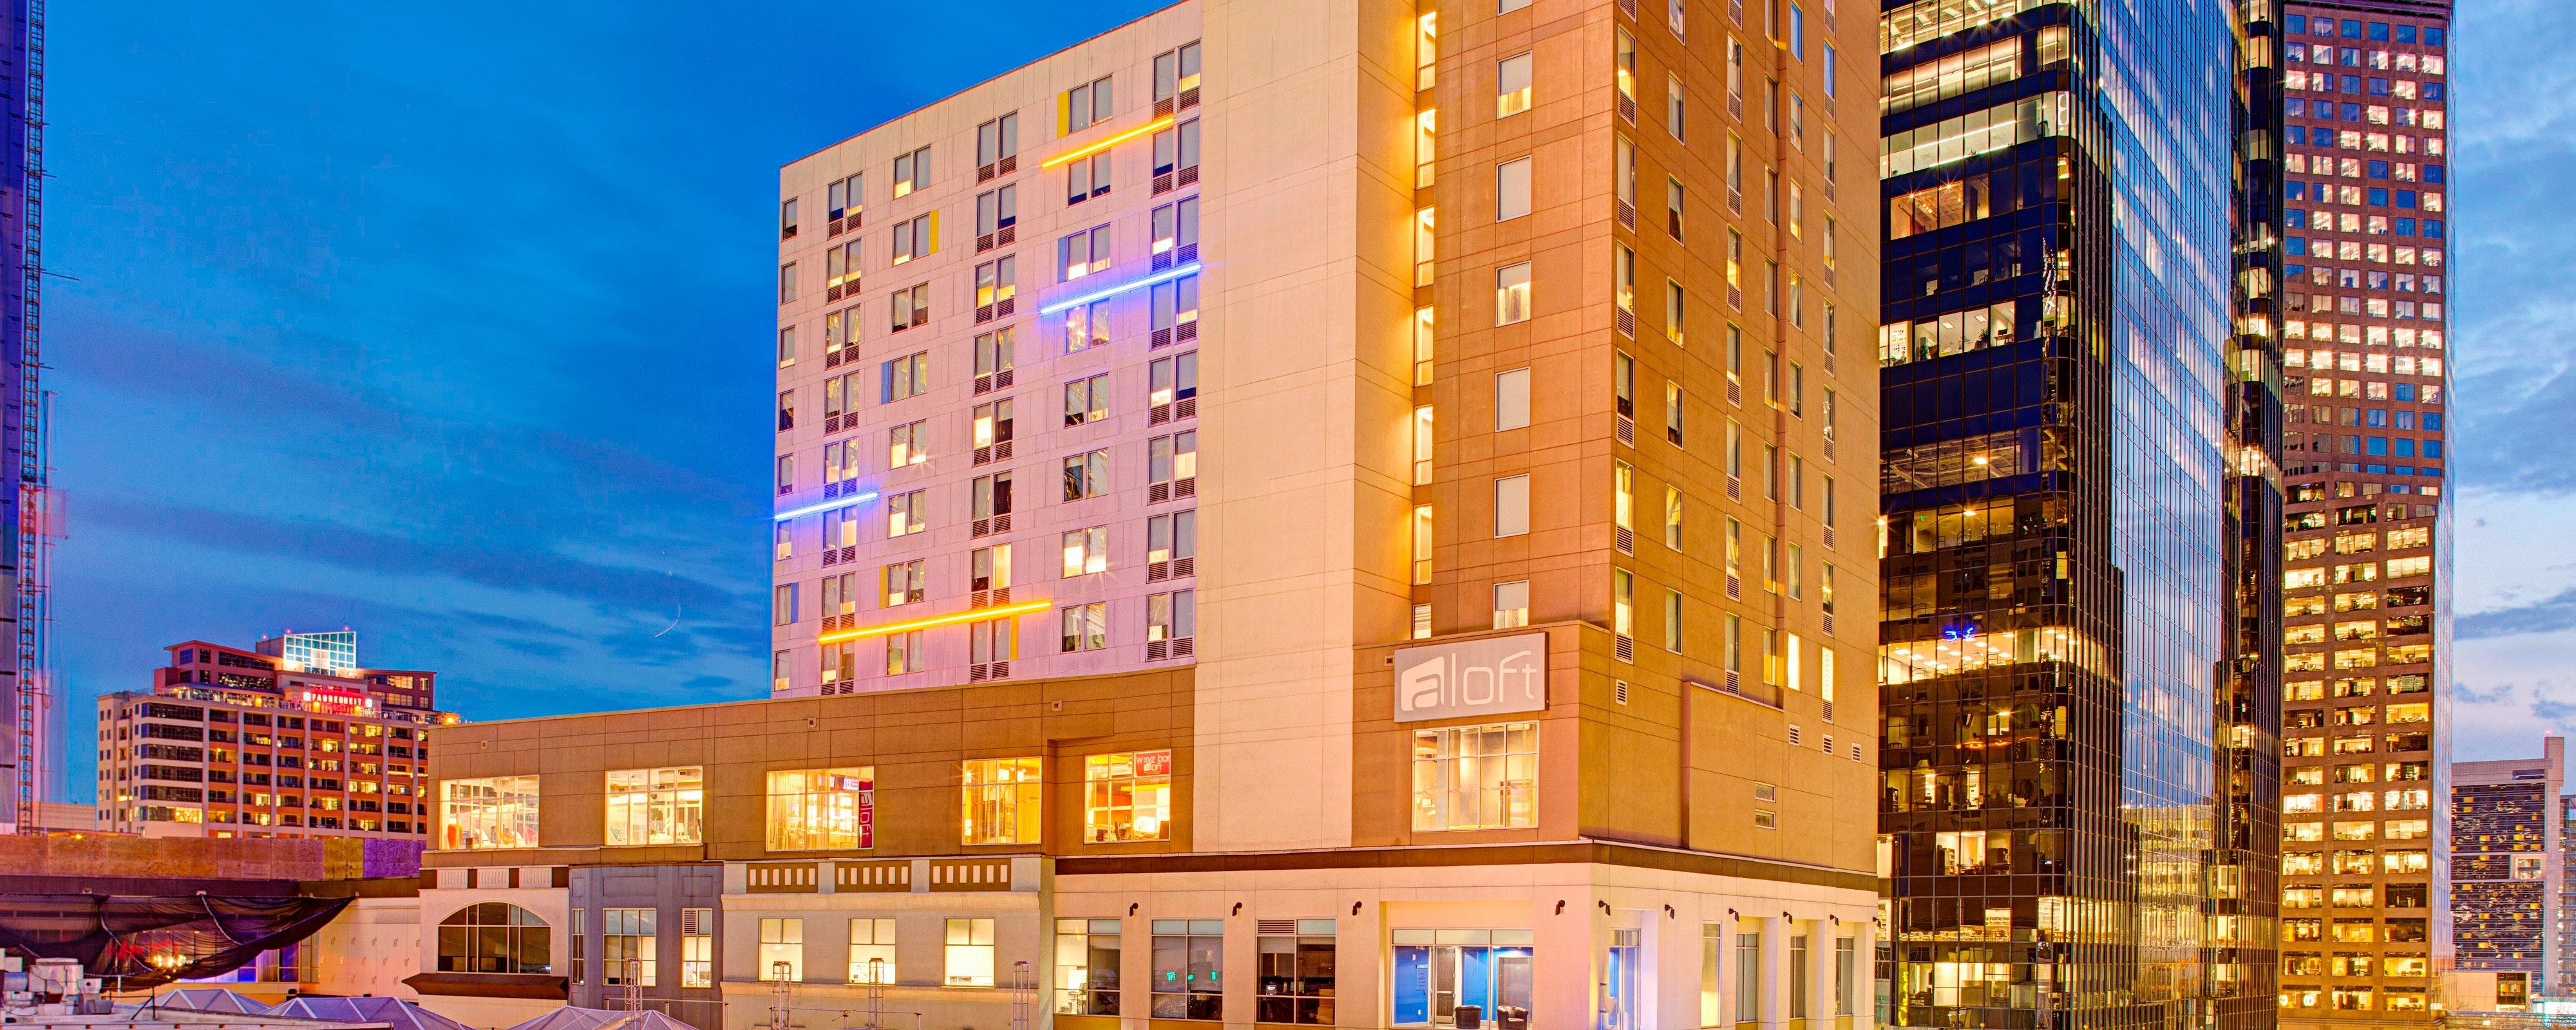 Aloft Hotels is a member of the Starwood Hotels & Resorts family and offers stylish, boutique hotels and affordable prices. Aloft Hotels are influenced by the urban culture with open spaces and built in technology. During reservation enter Aloft Hotels promotion codes to save on your stay.